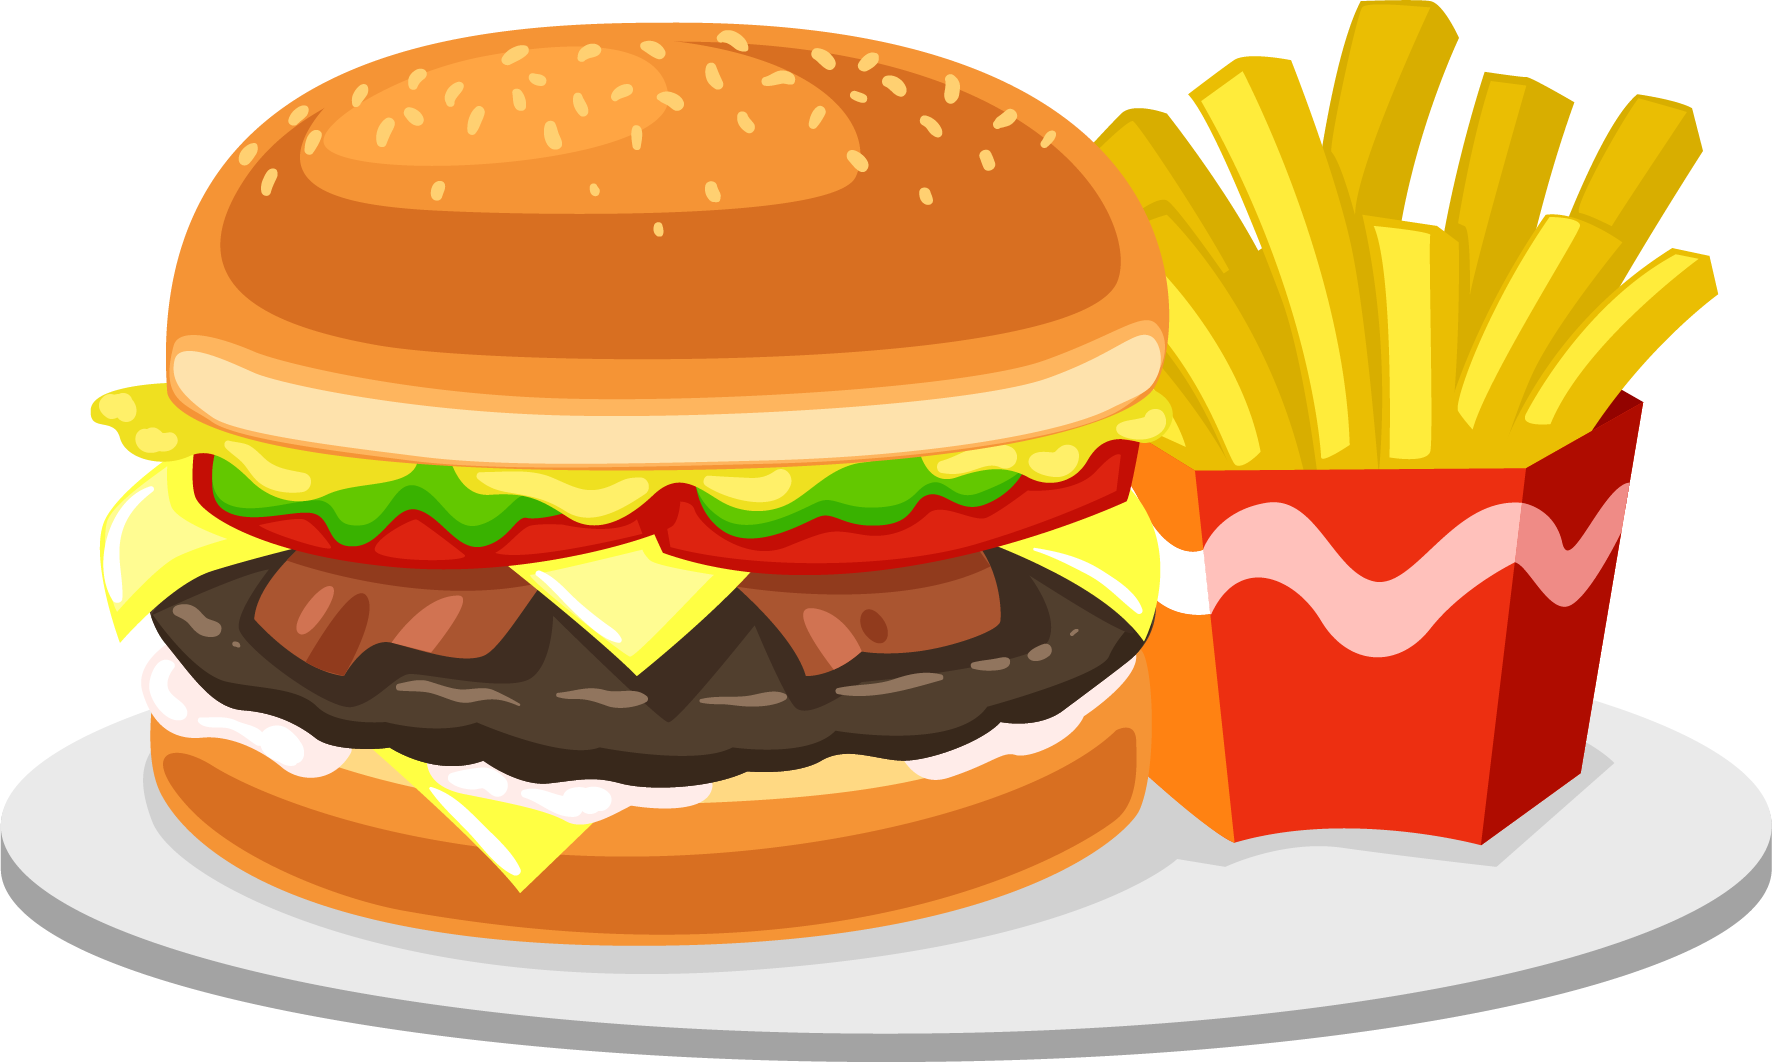 Food clipart junk food. Png transparent quality images